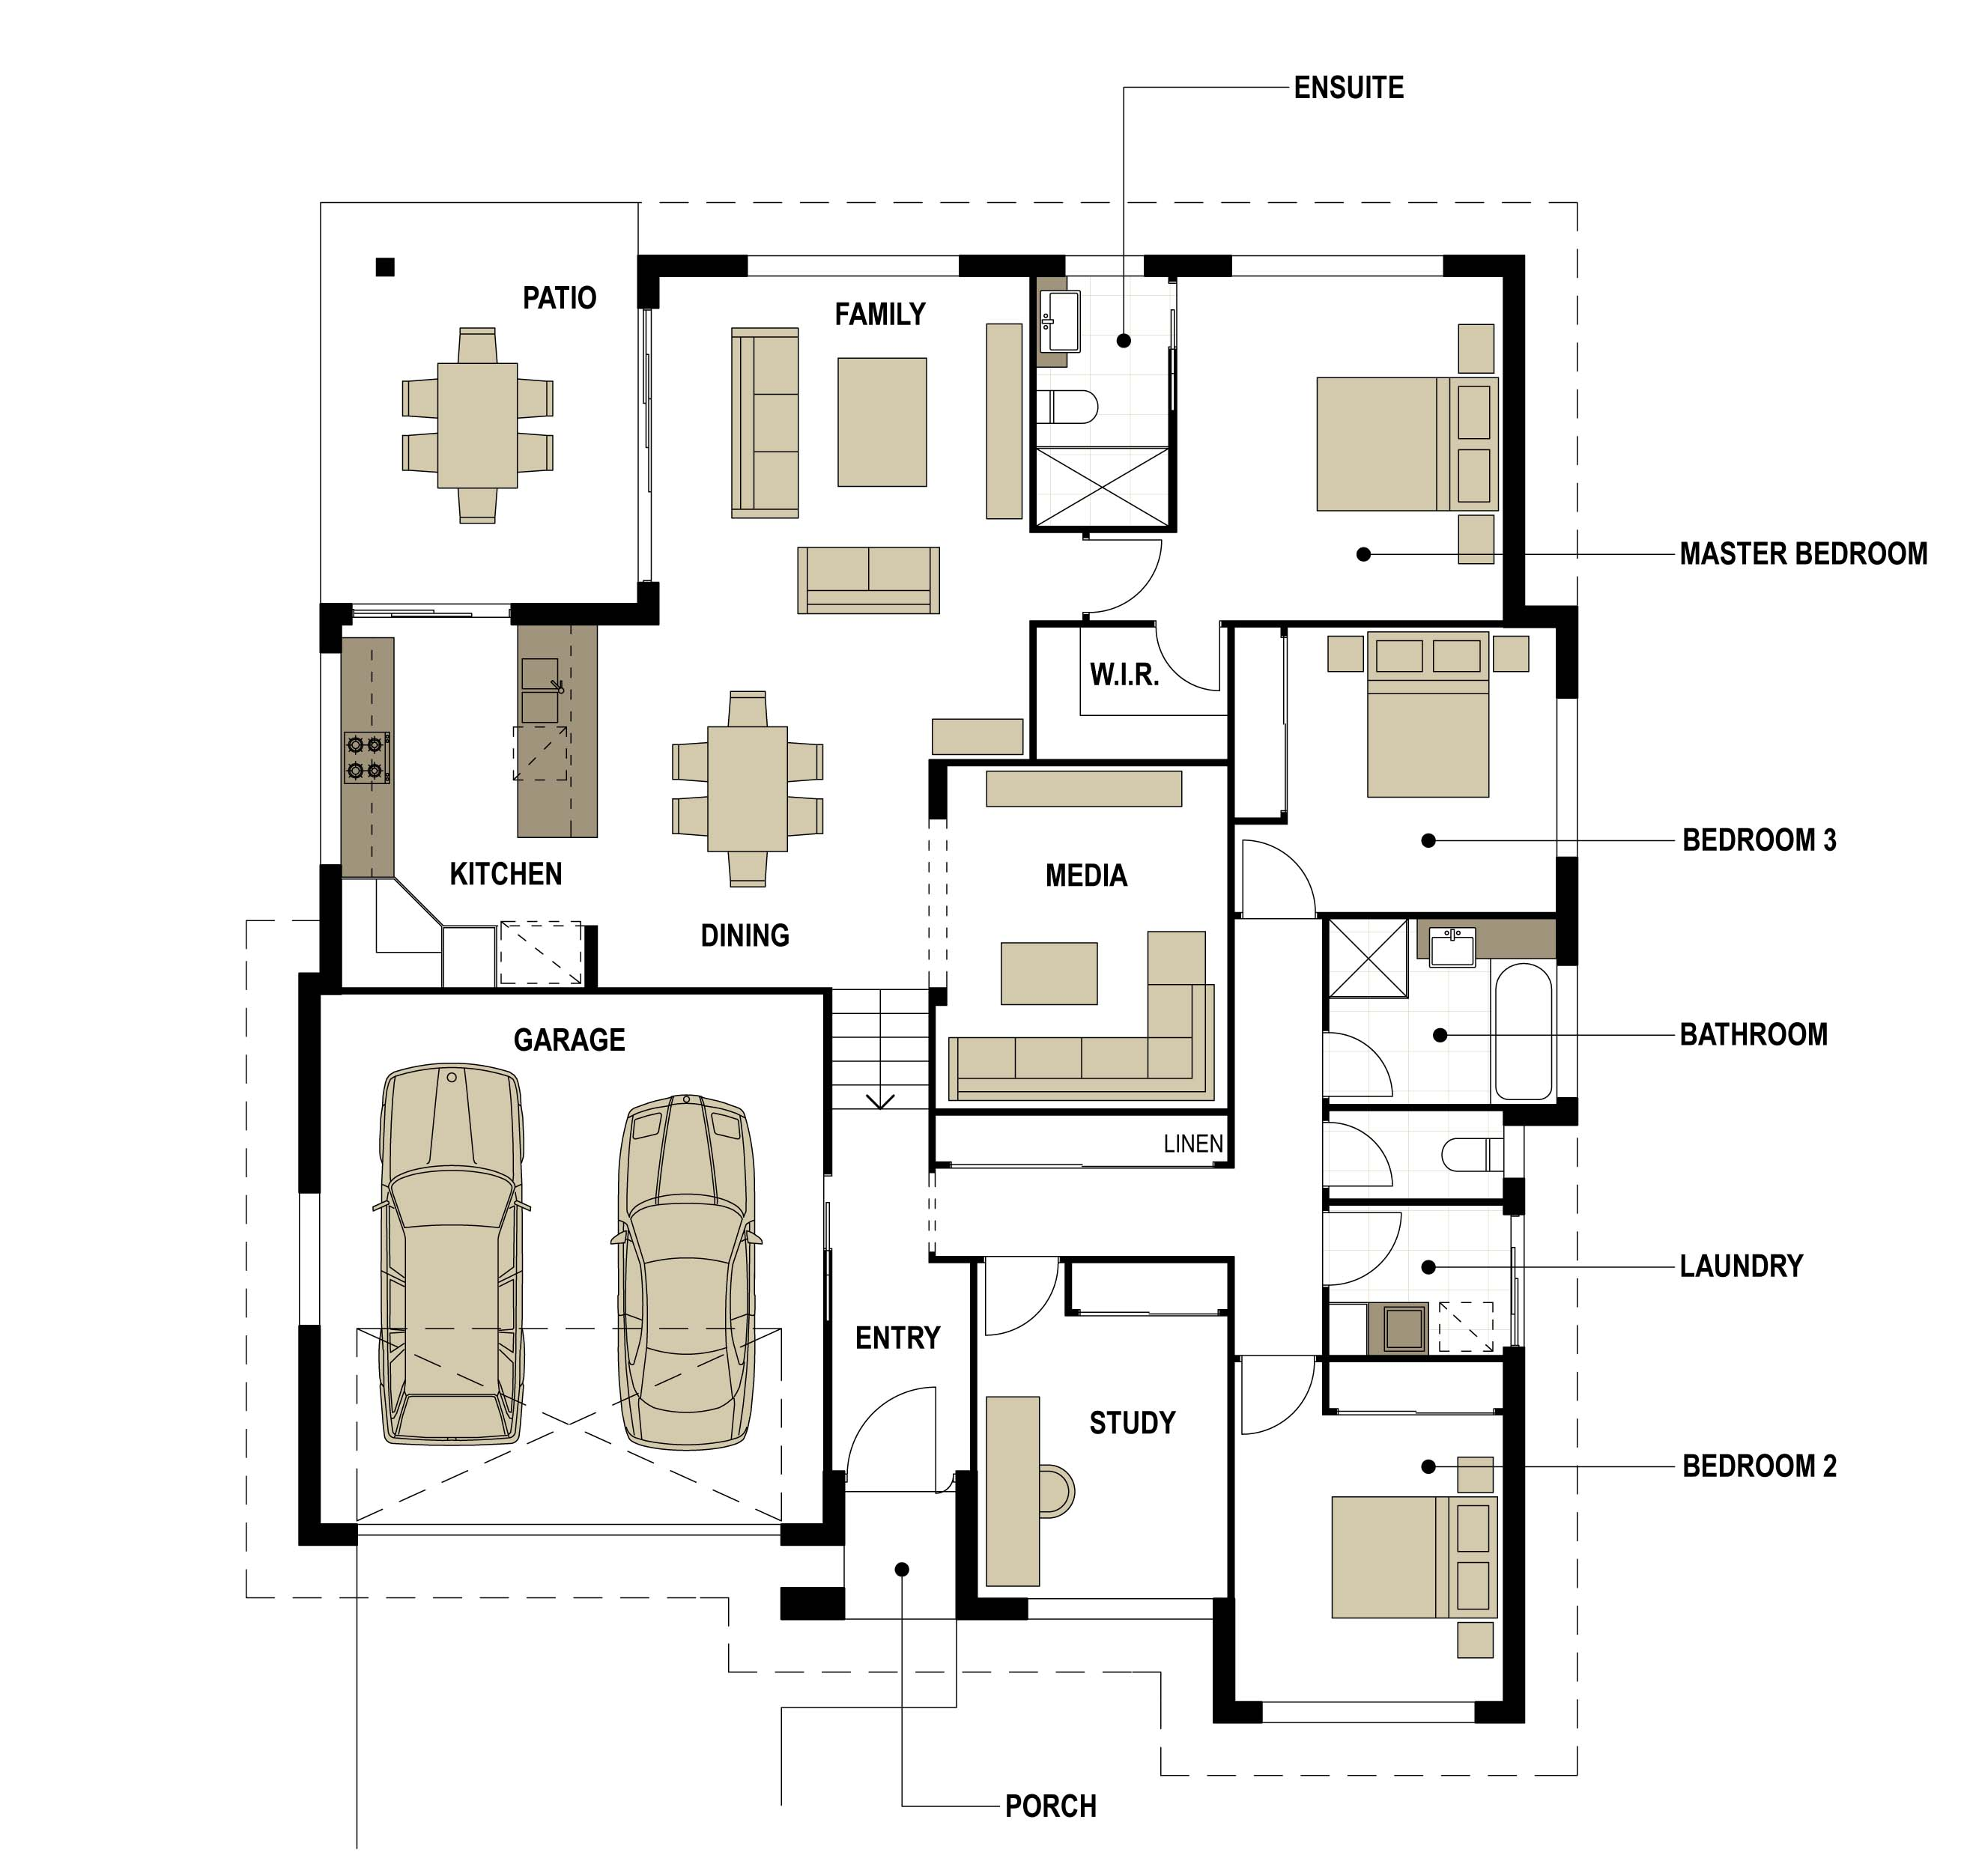 floor plans for home trend home design and decor